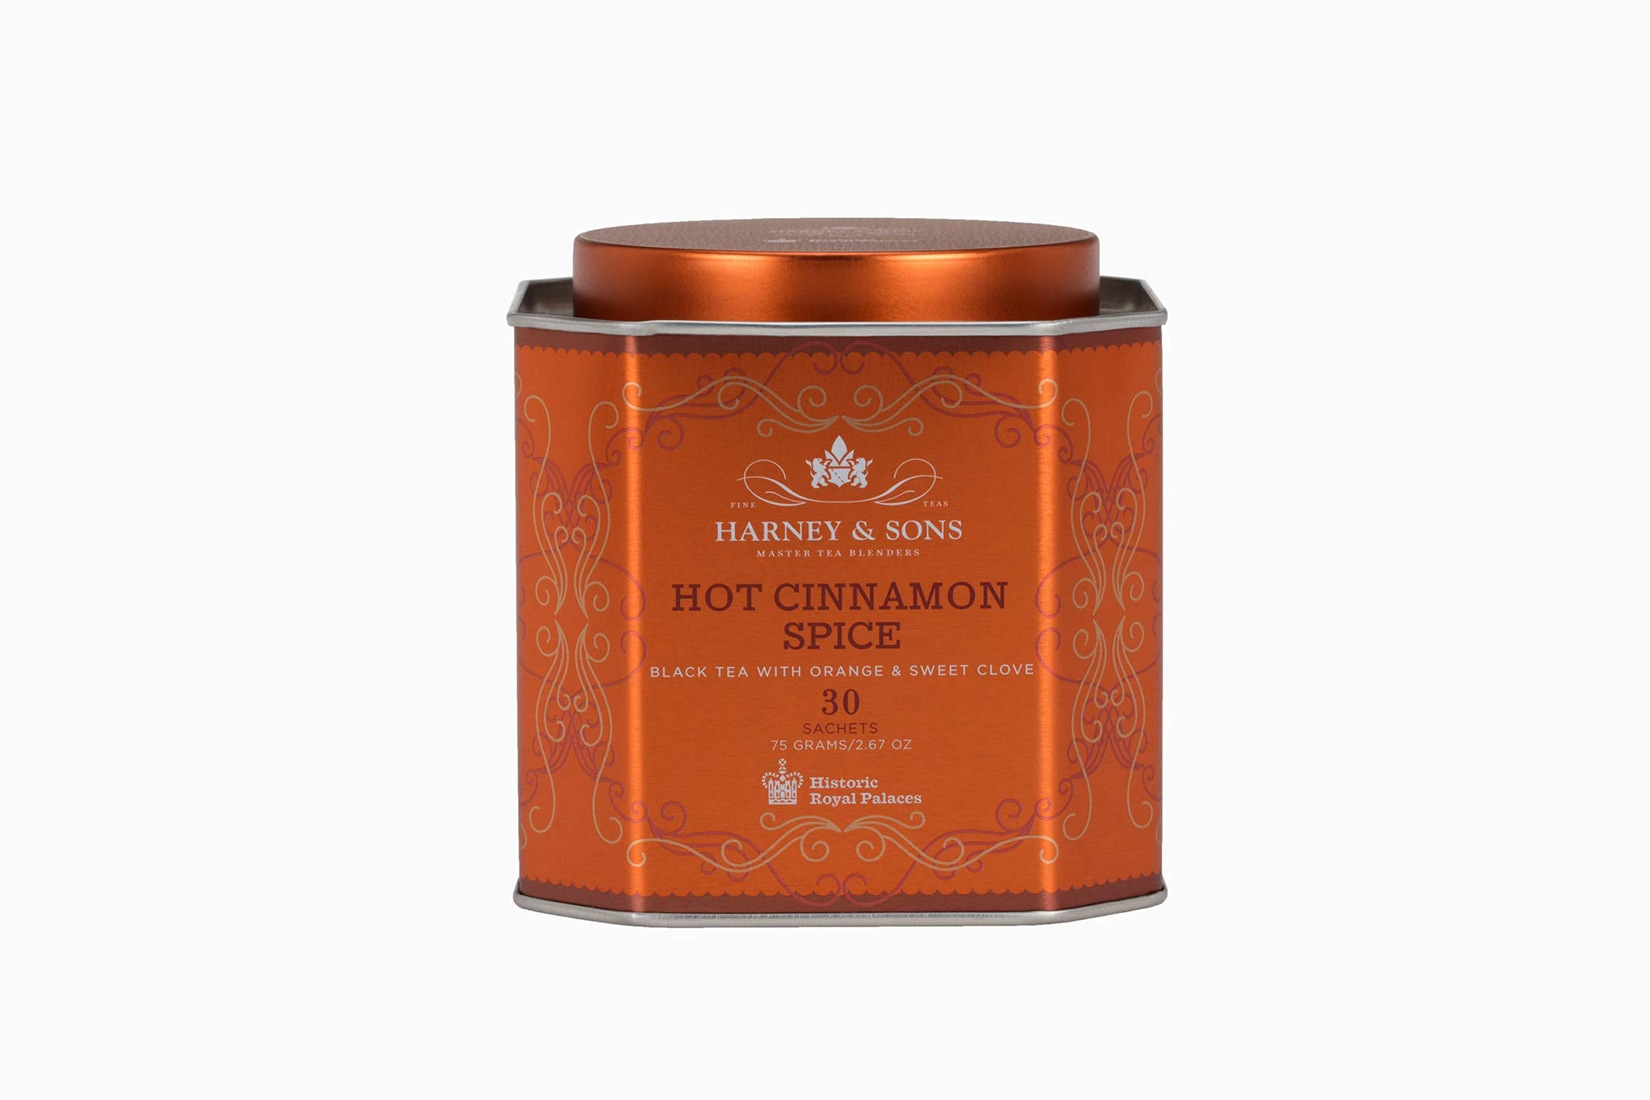 best tea brands black harney & sons - Luxe Digital